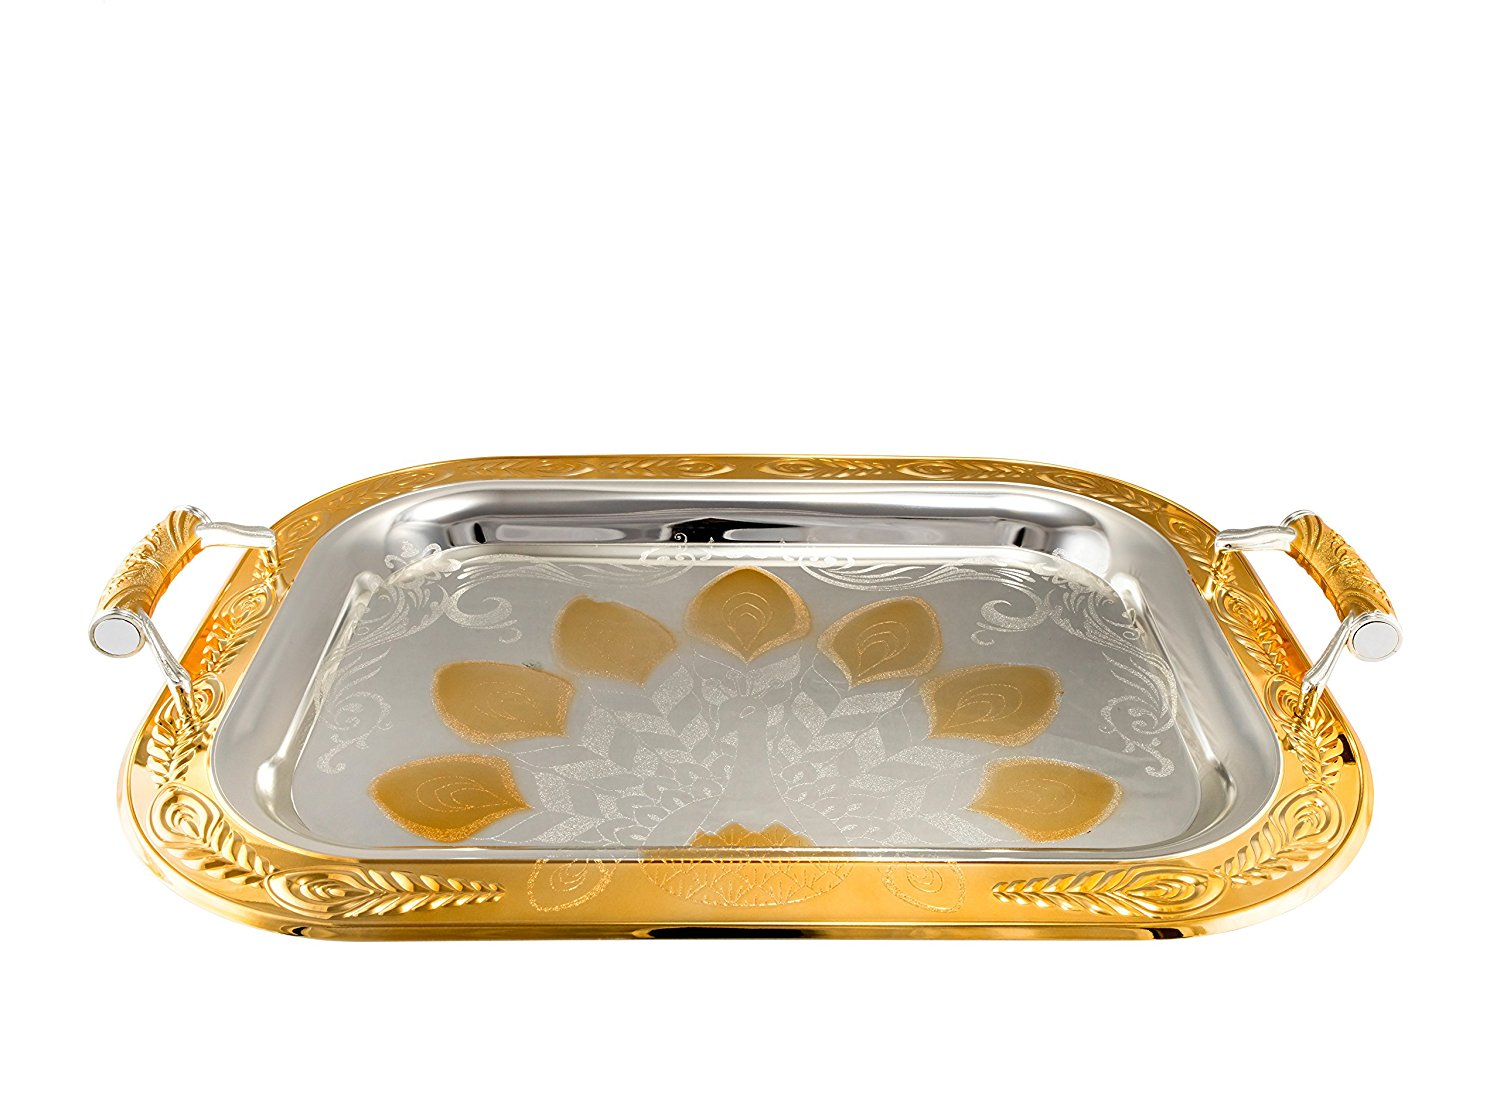 Gold Serving Tray Alpine Cuisine Serving Tray W Handles 18 Inch And 14 Inch Gold Handmade Set Of 2